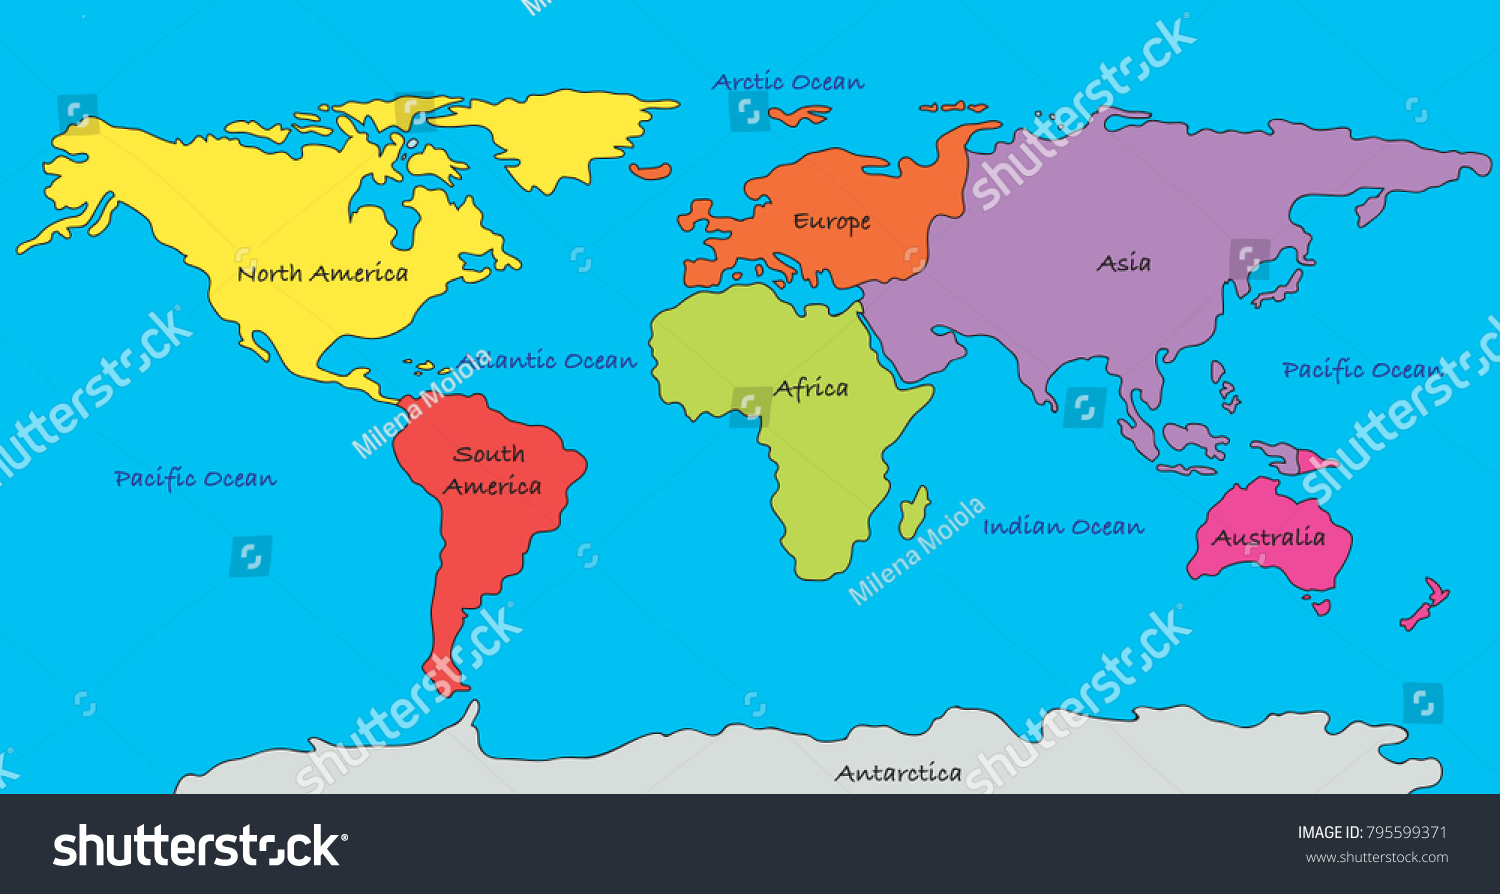 Continents World Map Colorful Stock Map Of The Holy Land Billy - Different continents of the world